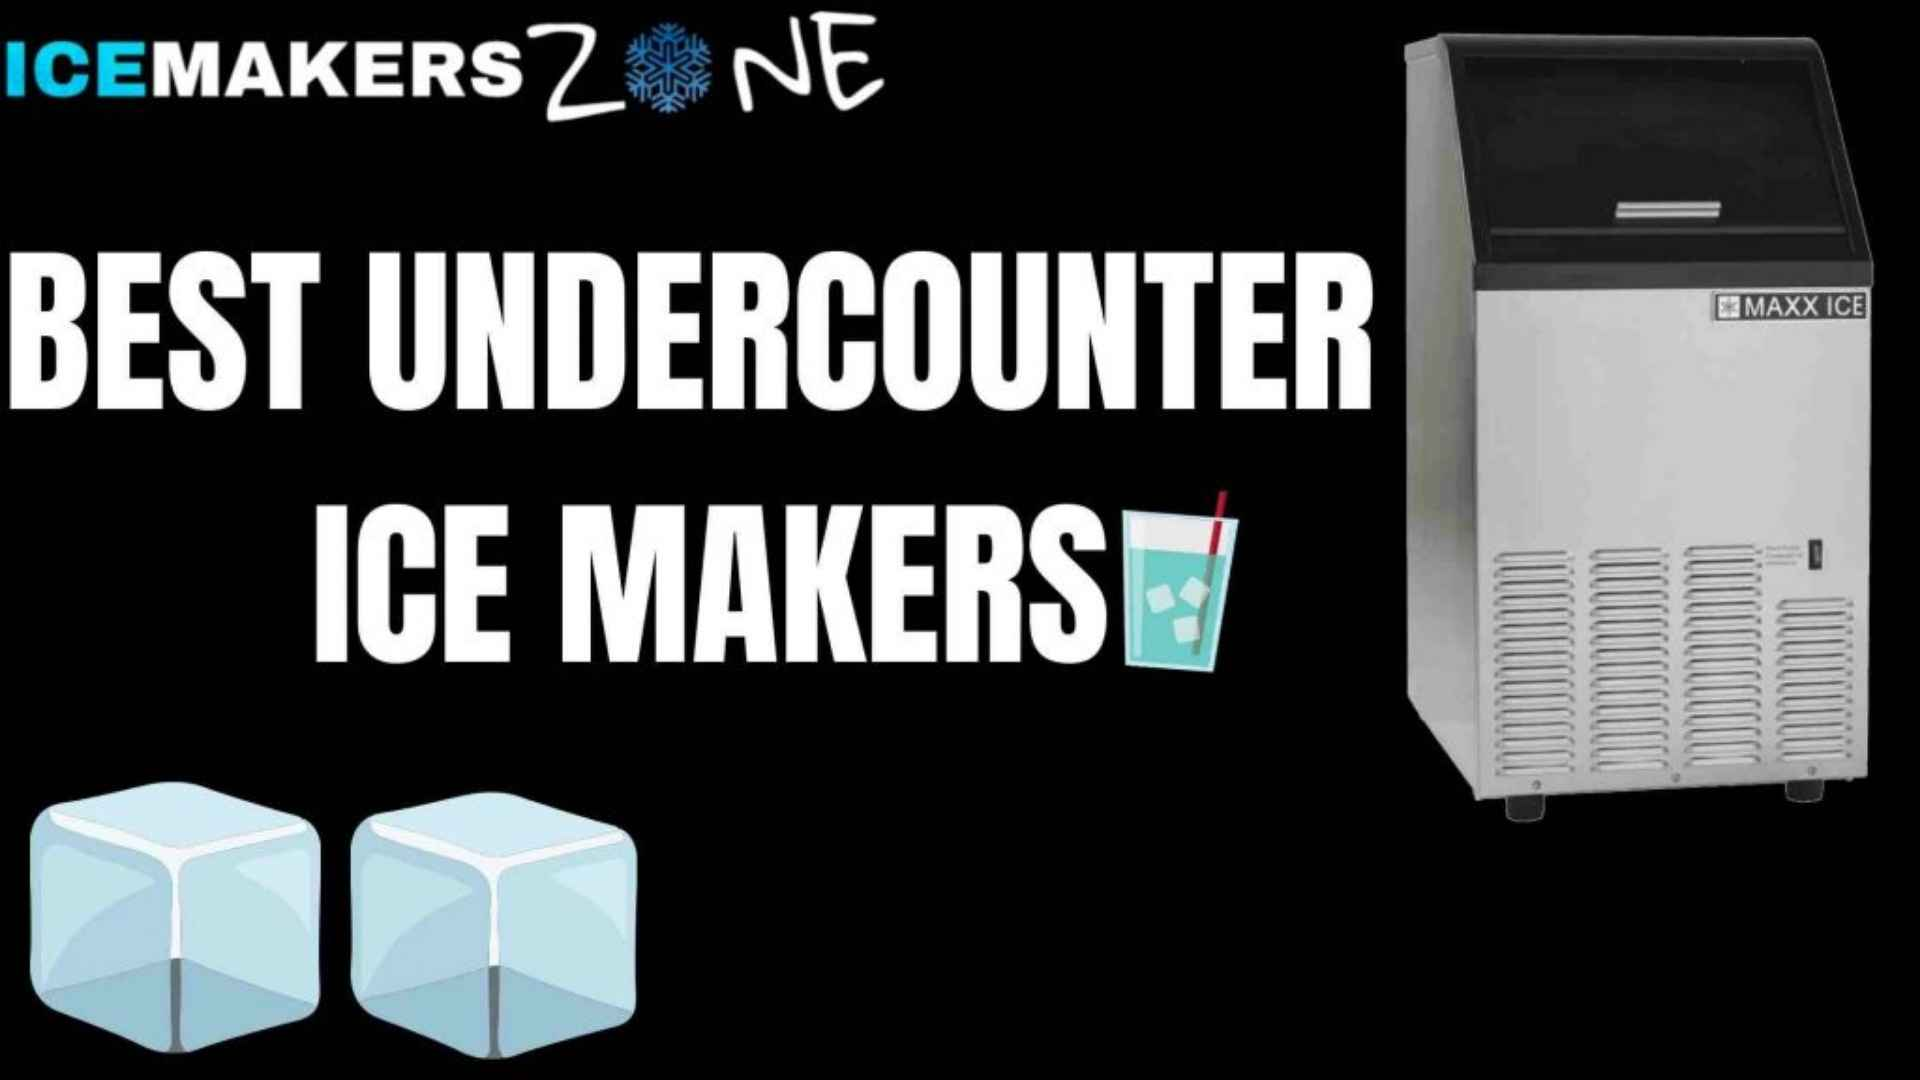 8 Best Undercounter Ice Makers Review 2021 By Icemakerszone